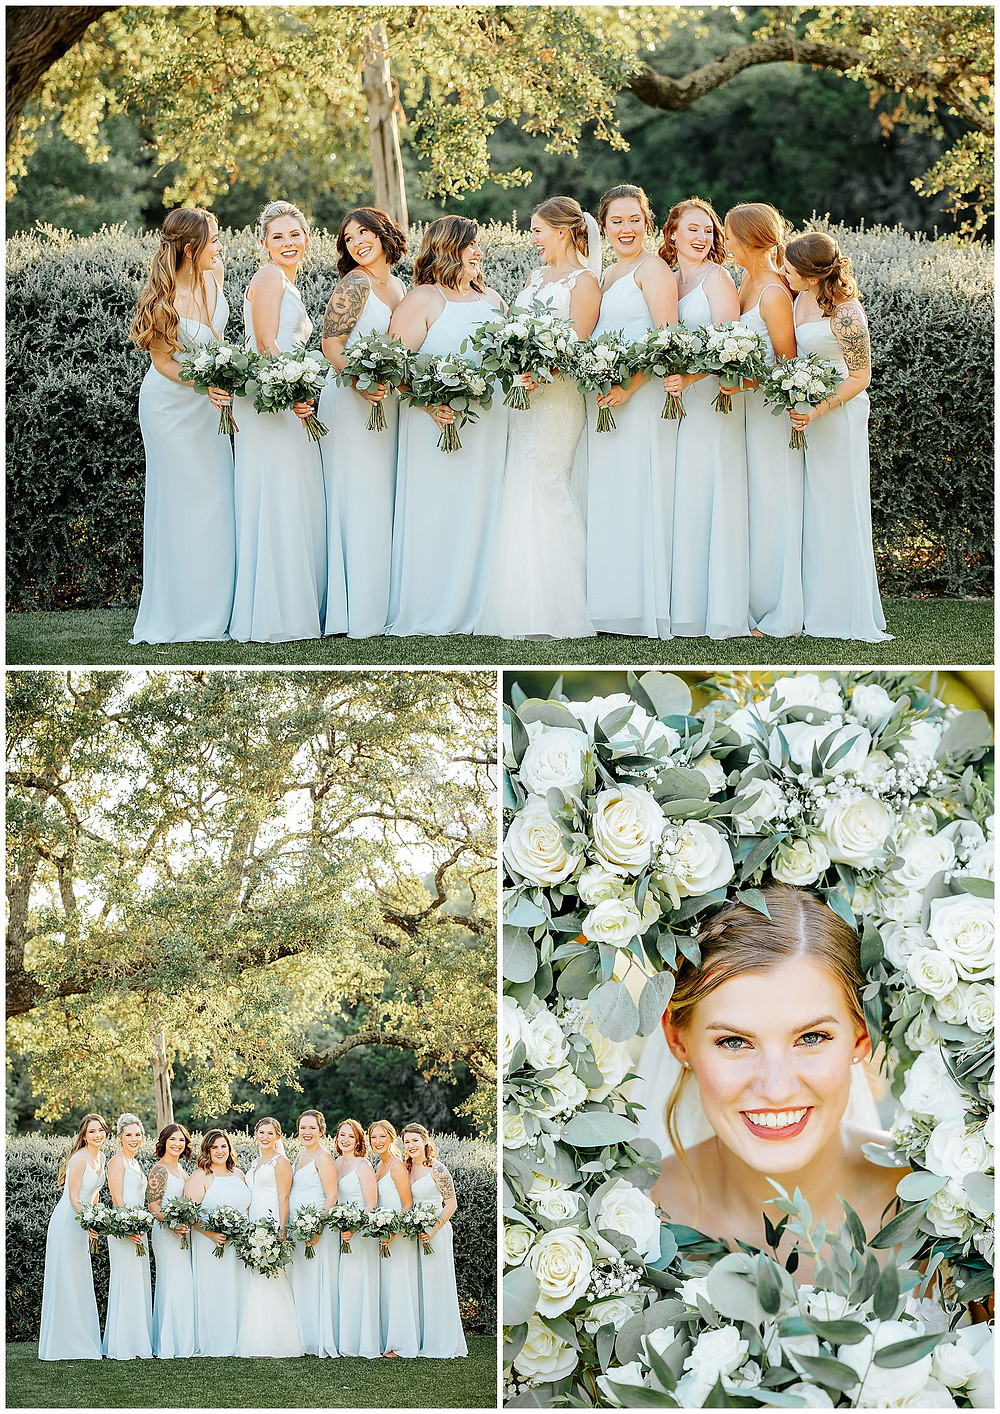 Hill Country Wedding, Texas Wedding, Boerne Texas Wedding Photographer, San Antonio Wedding, Kendall Point, Snap Chic Photography, Snap Chic Planning, Blume Haus Floral, Texas Bride, Texas Groom,